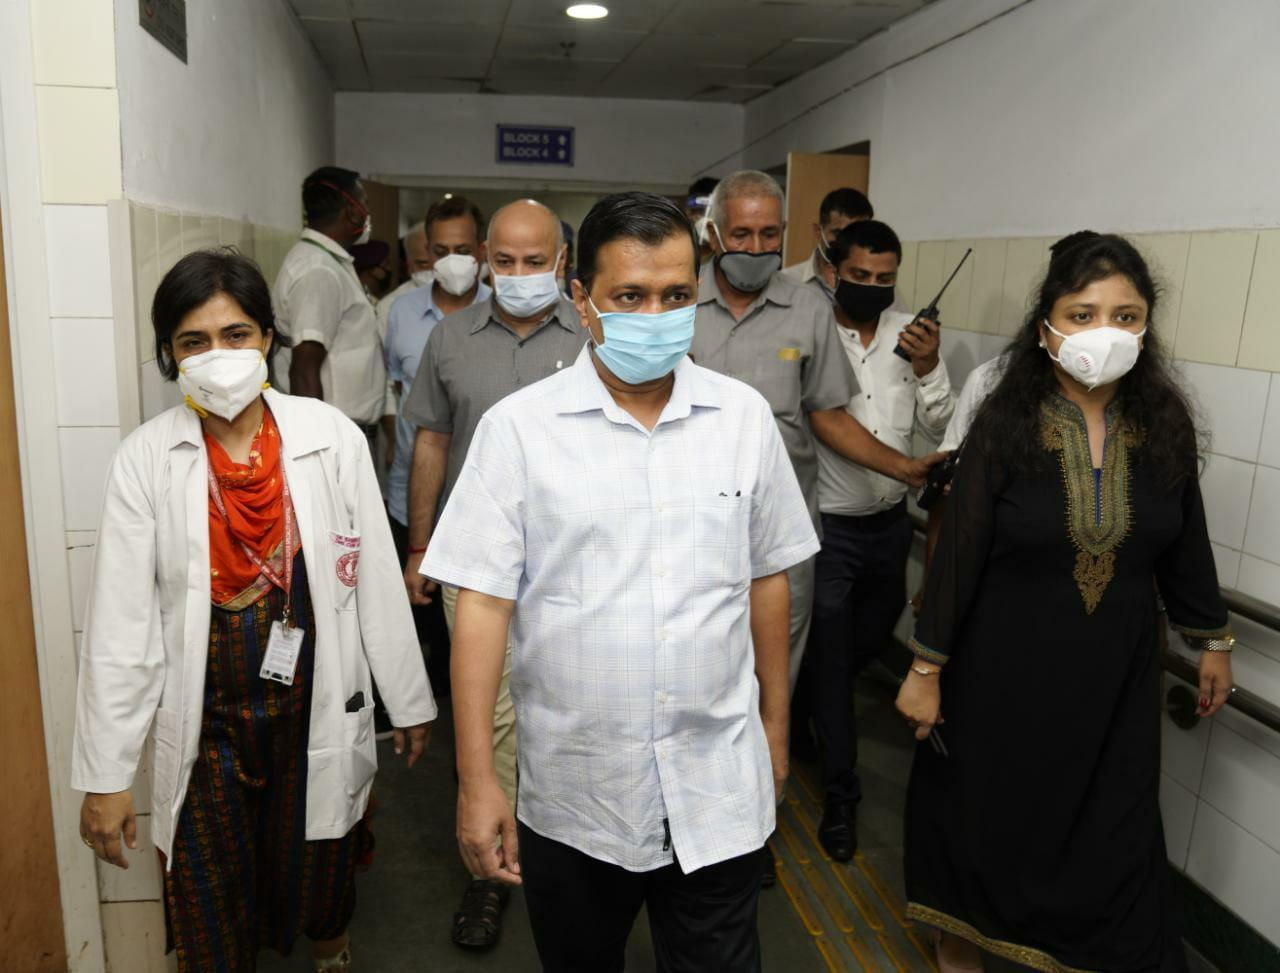 More ICU beds will ensure better treatment of patients, Kejriwal